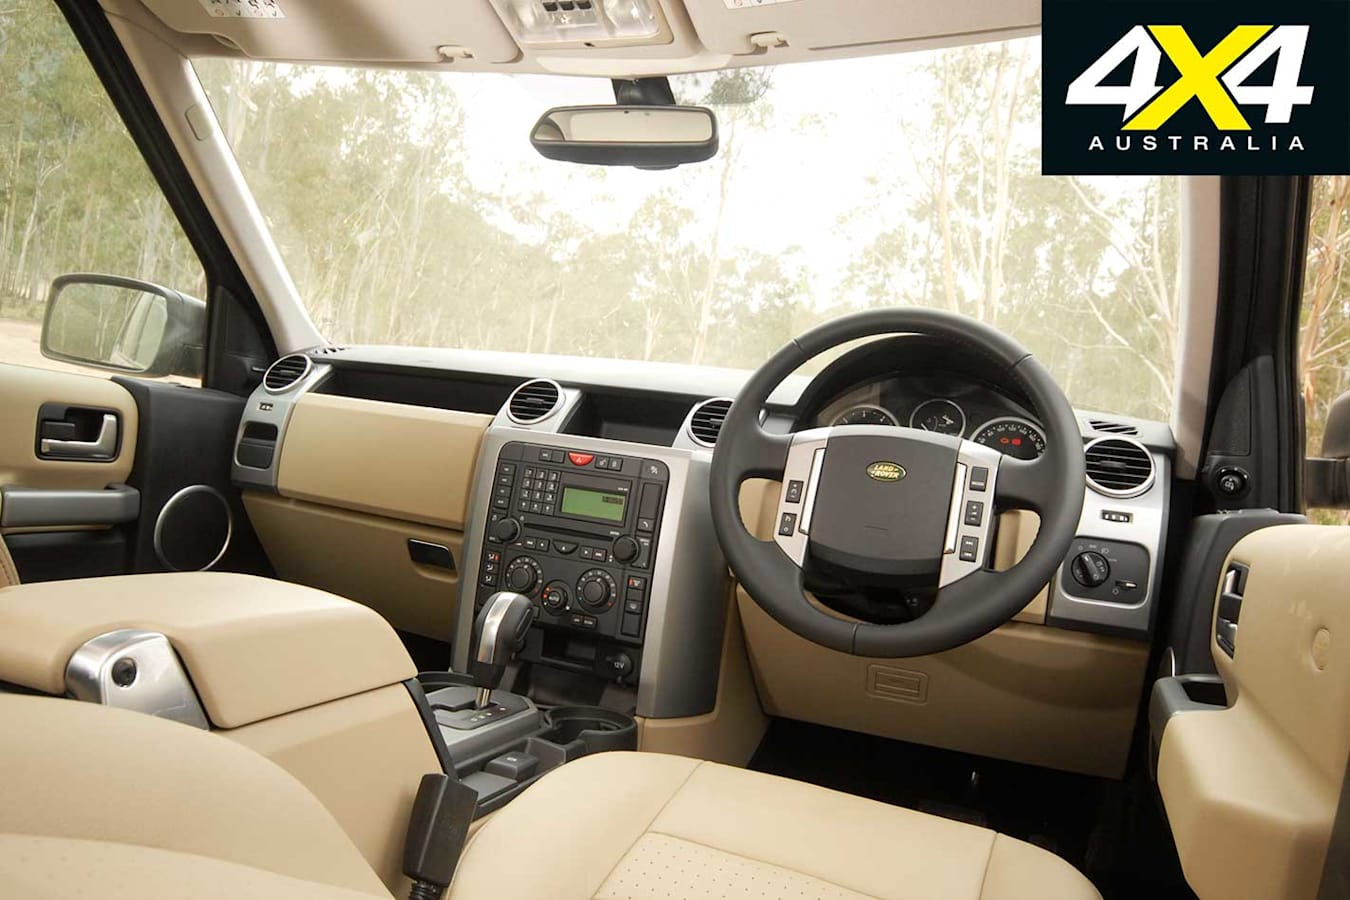 2009 Land Rover Discovery 3 Interior Jpg